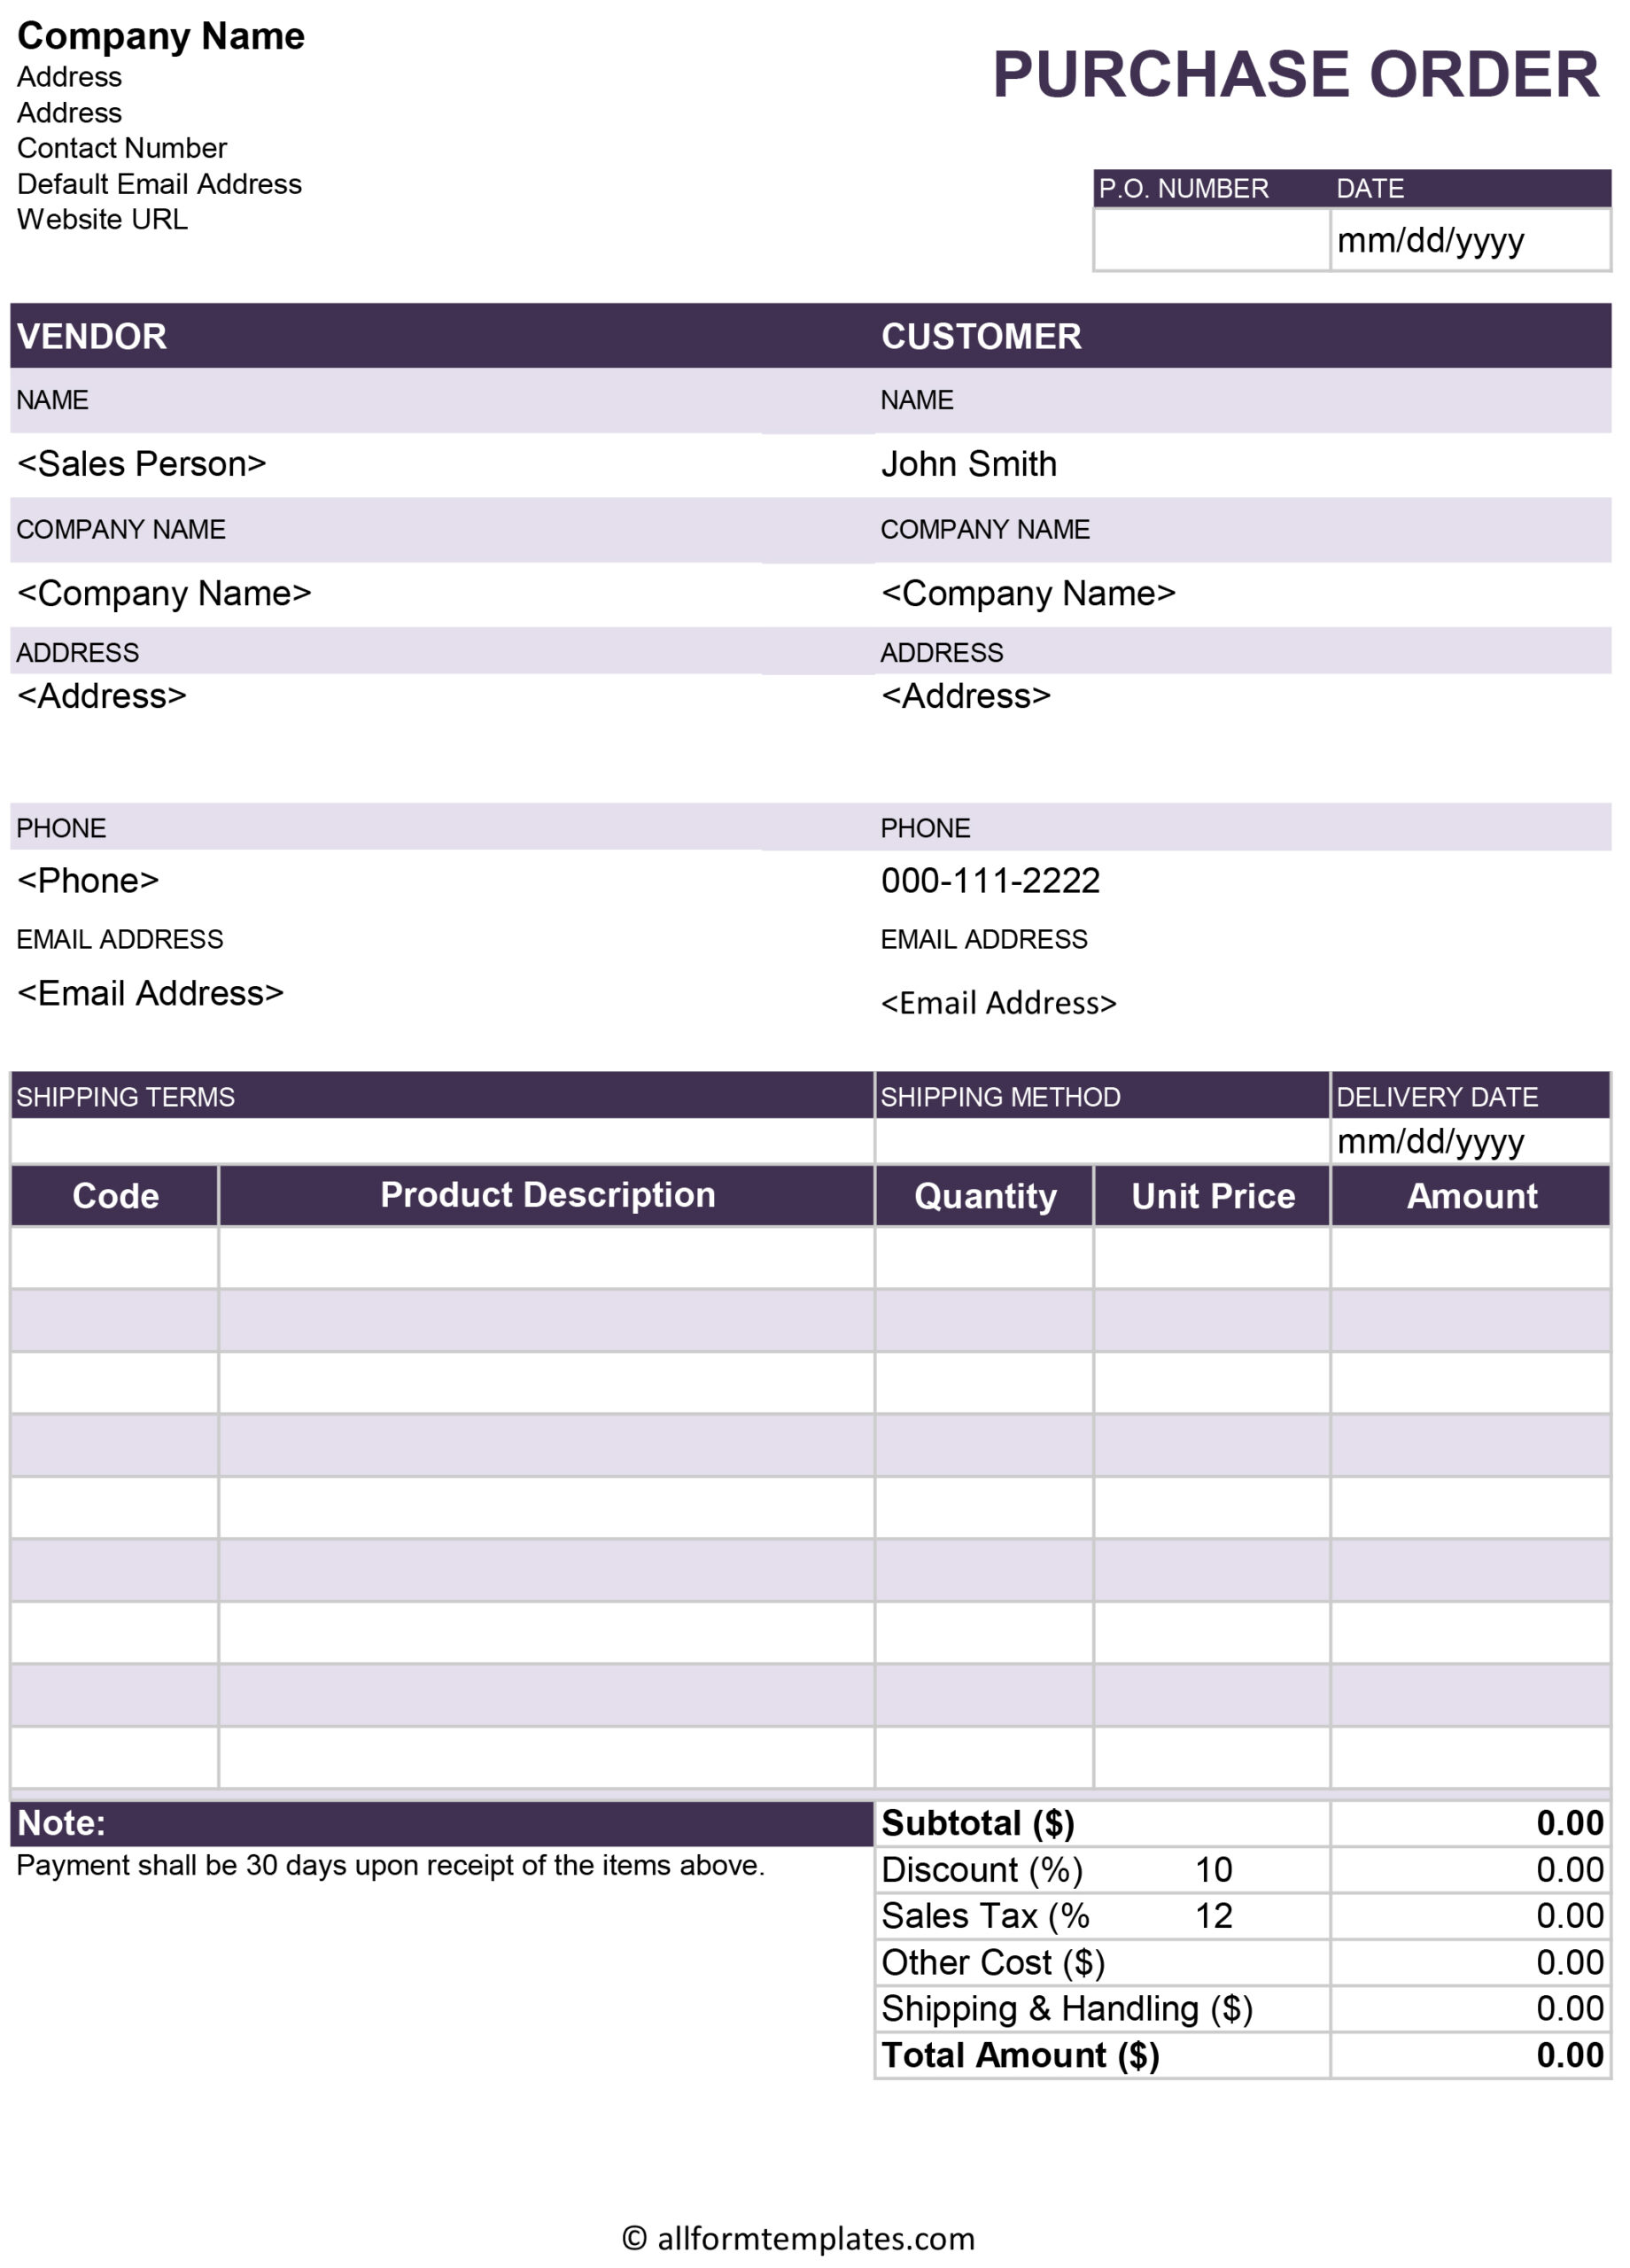 Purchase-Order-Template-HD